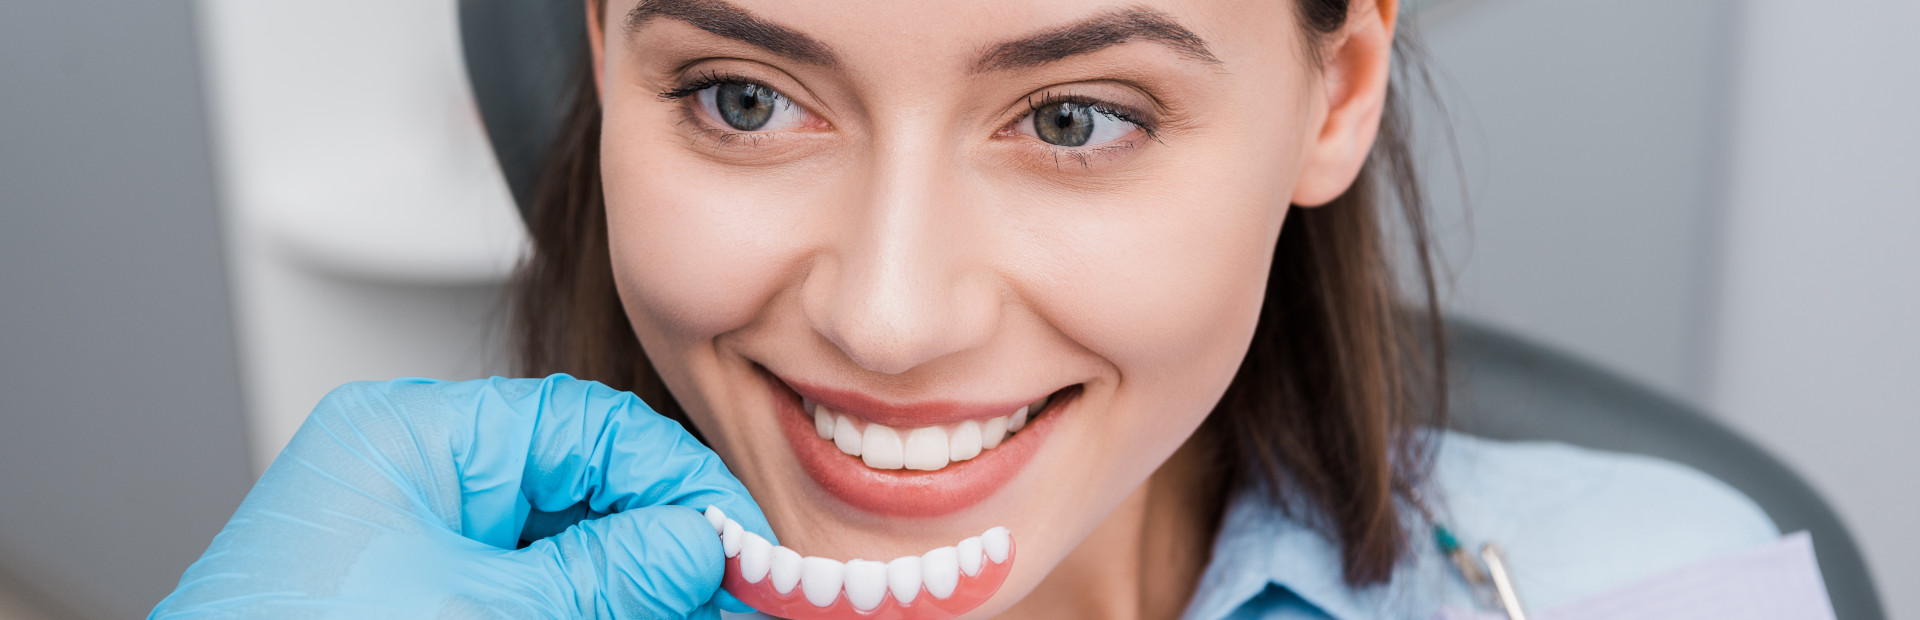 Beverly Hills Advanced Specialties of Dentistry - Blog